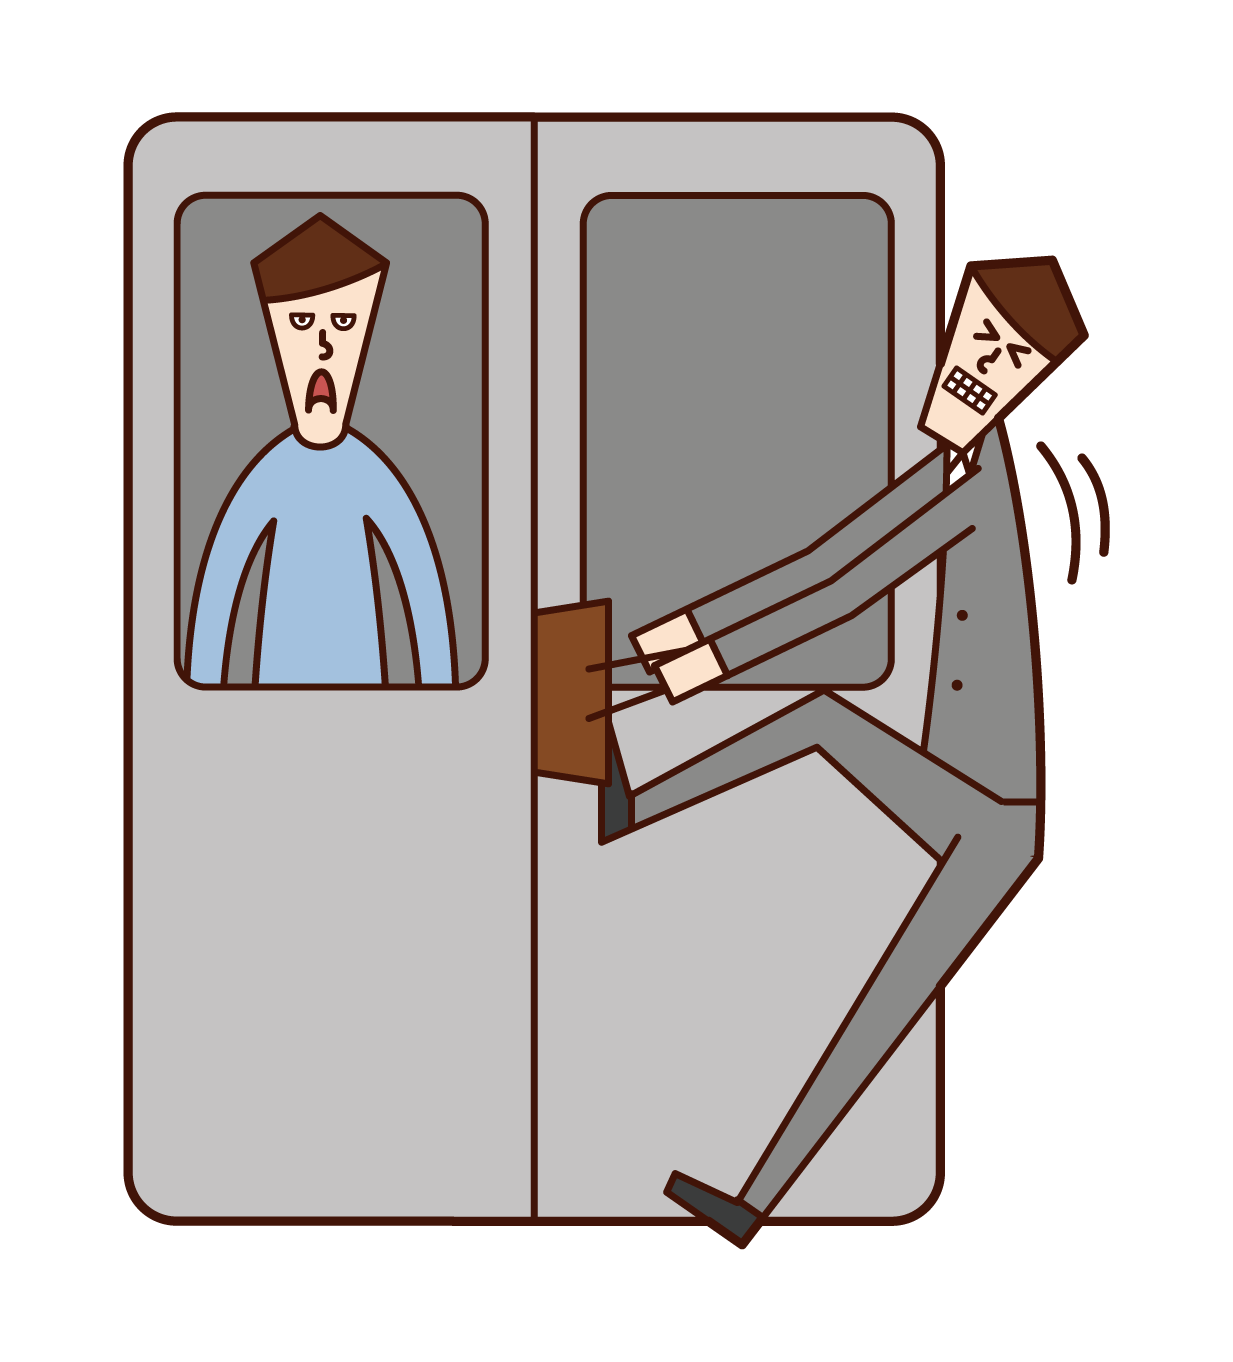 Illustration of a man with luggage caught in a train door